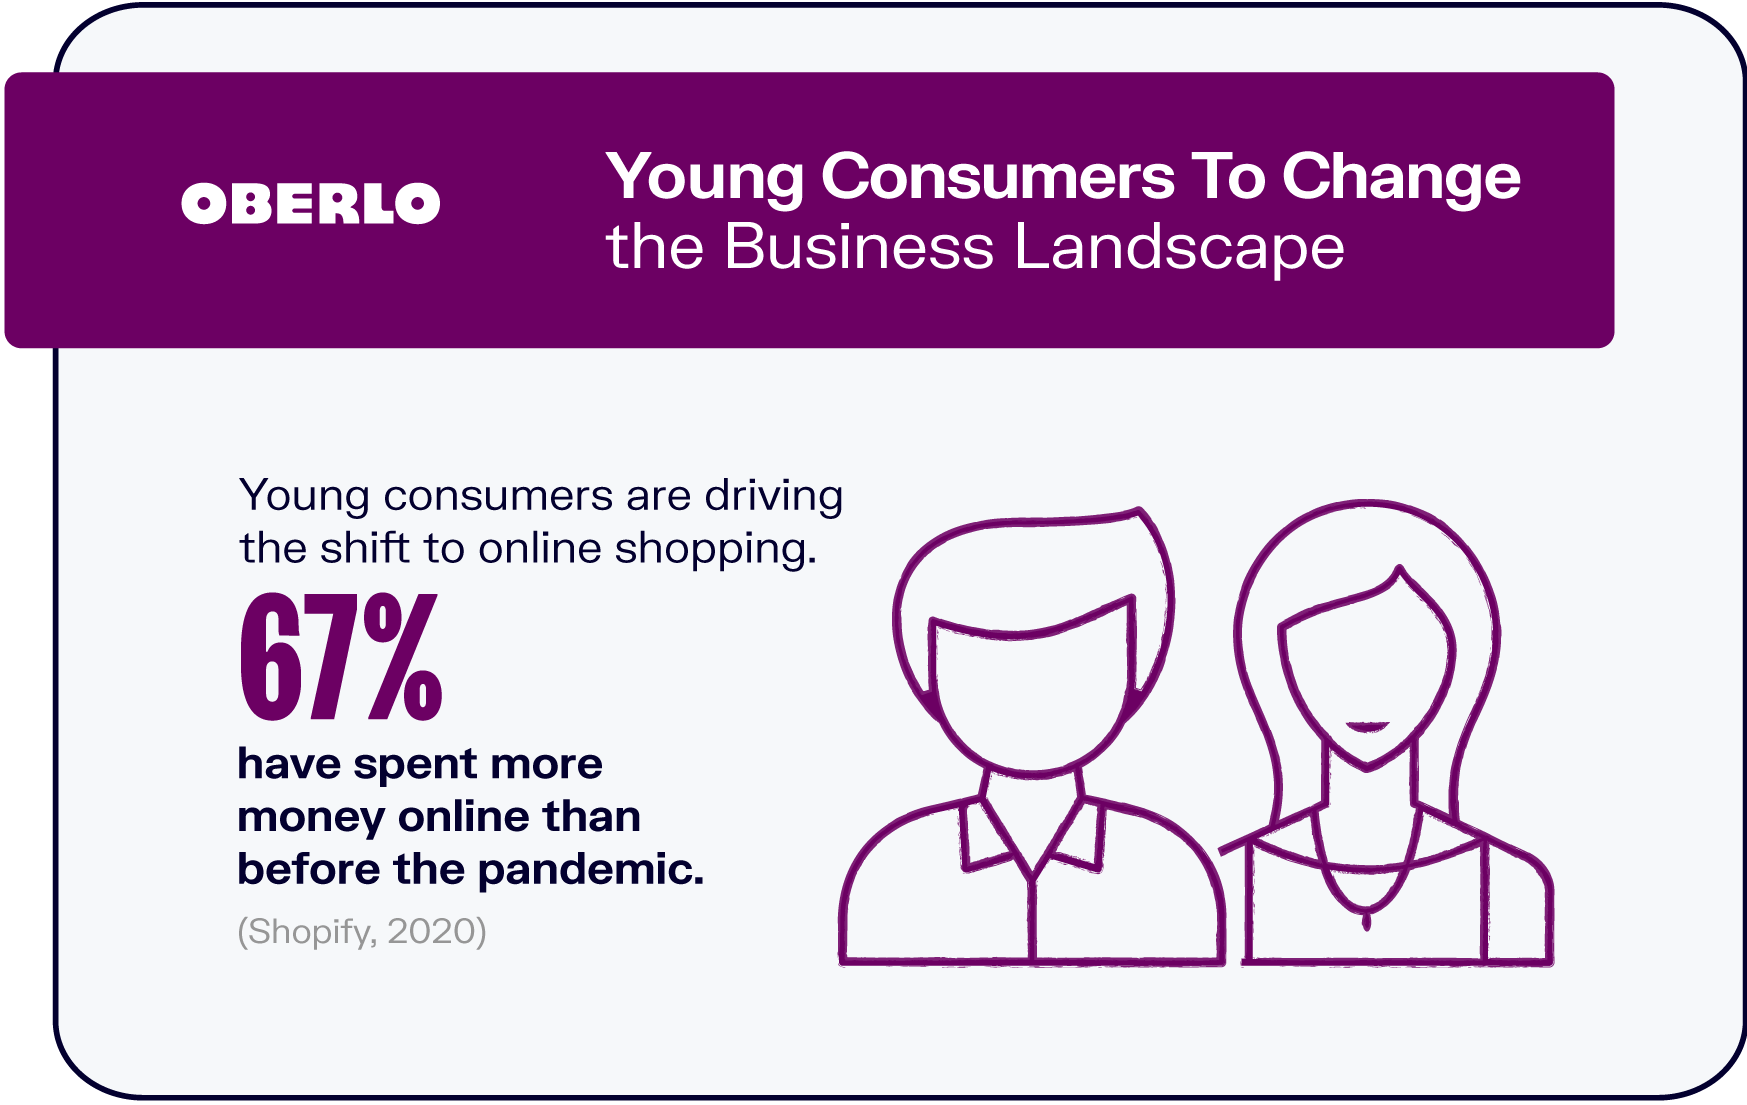 Young Consumers To Change the Business Landscape